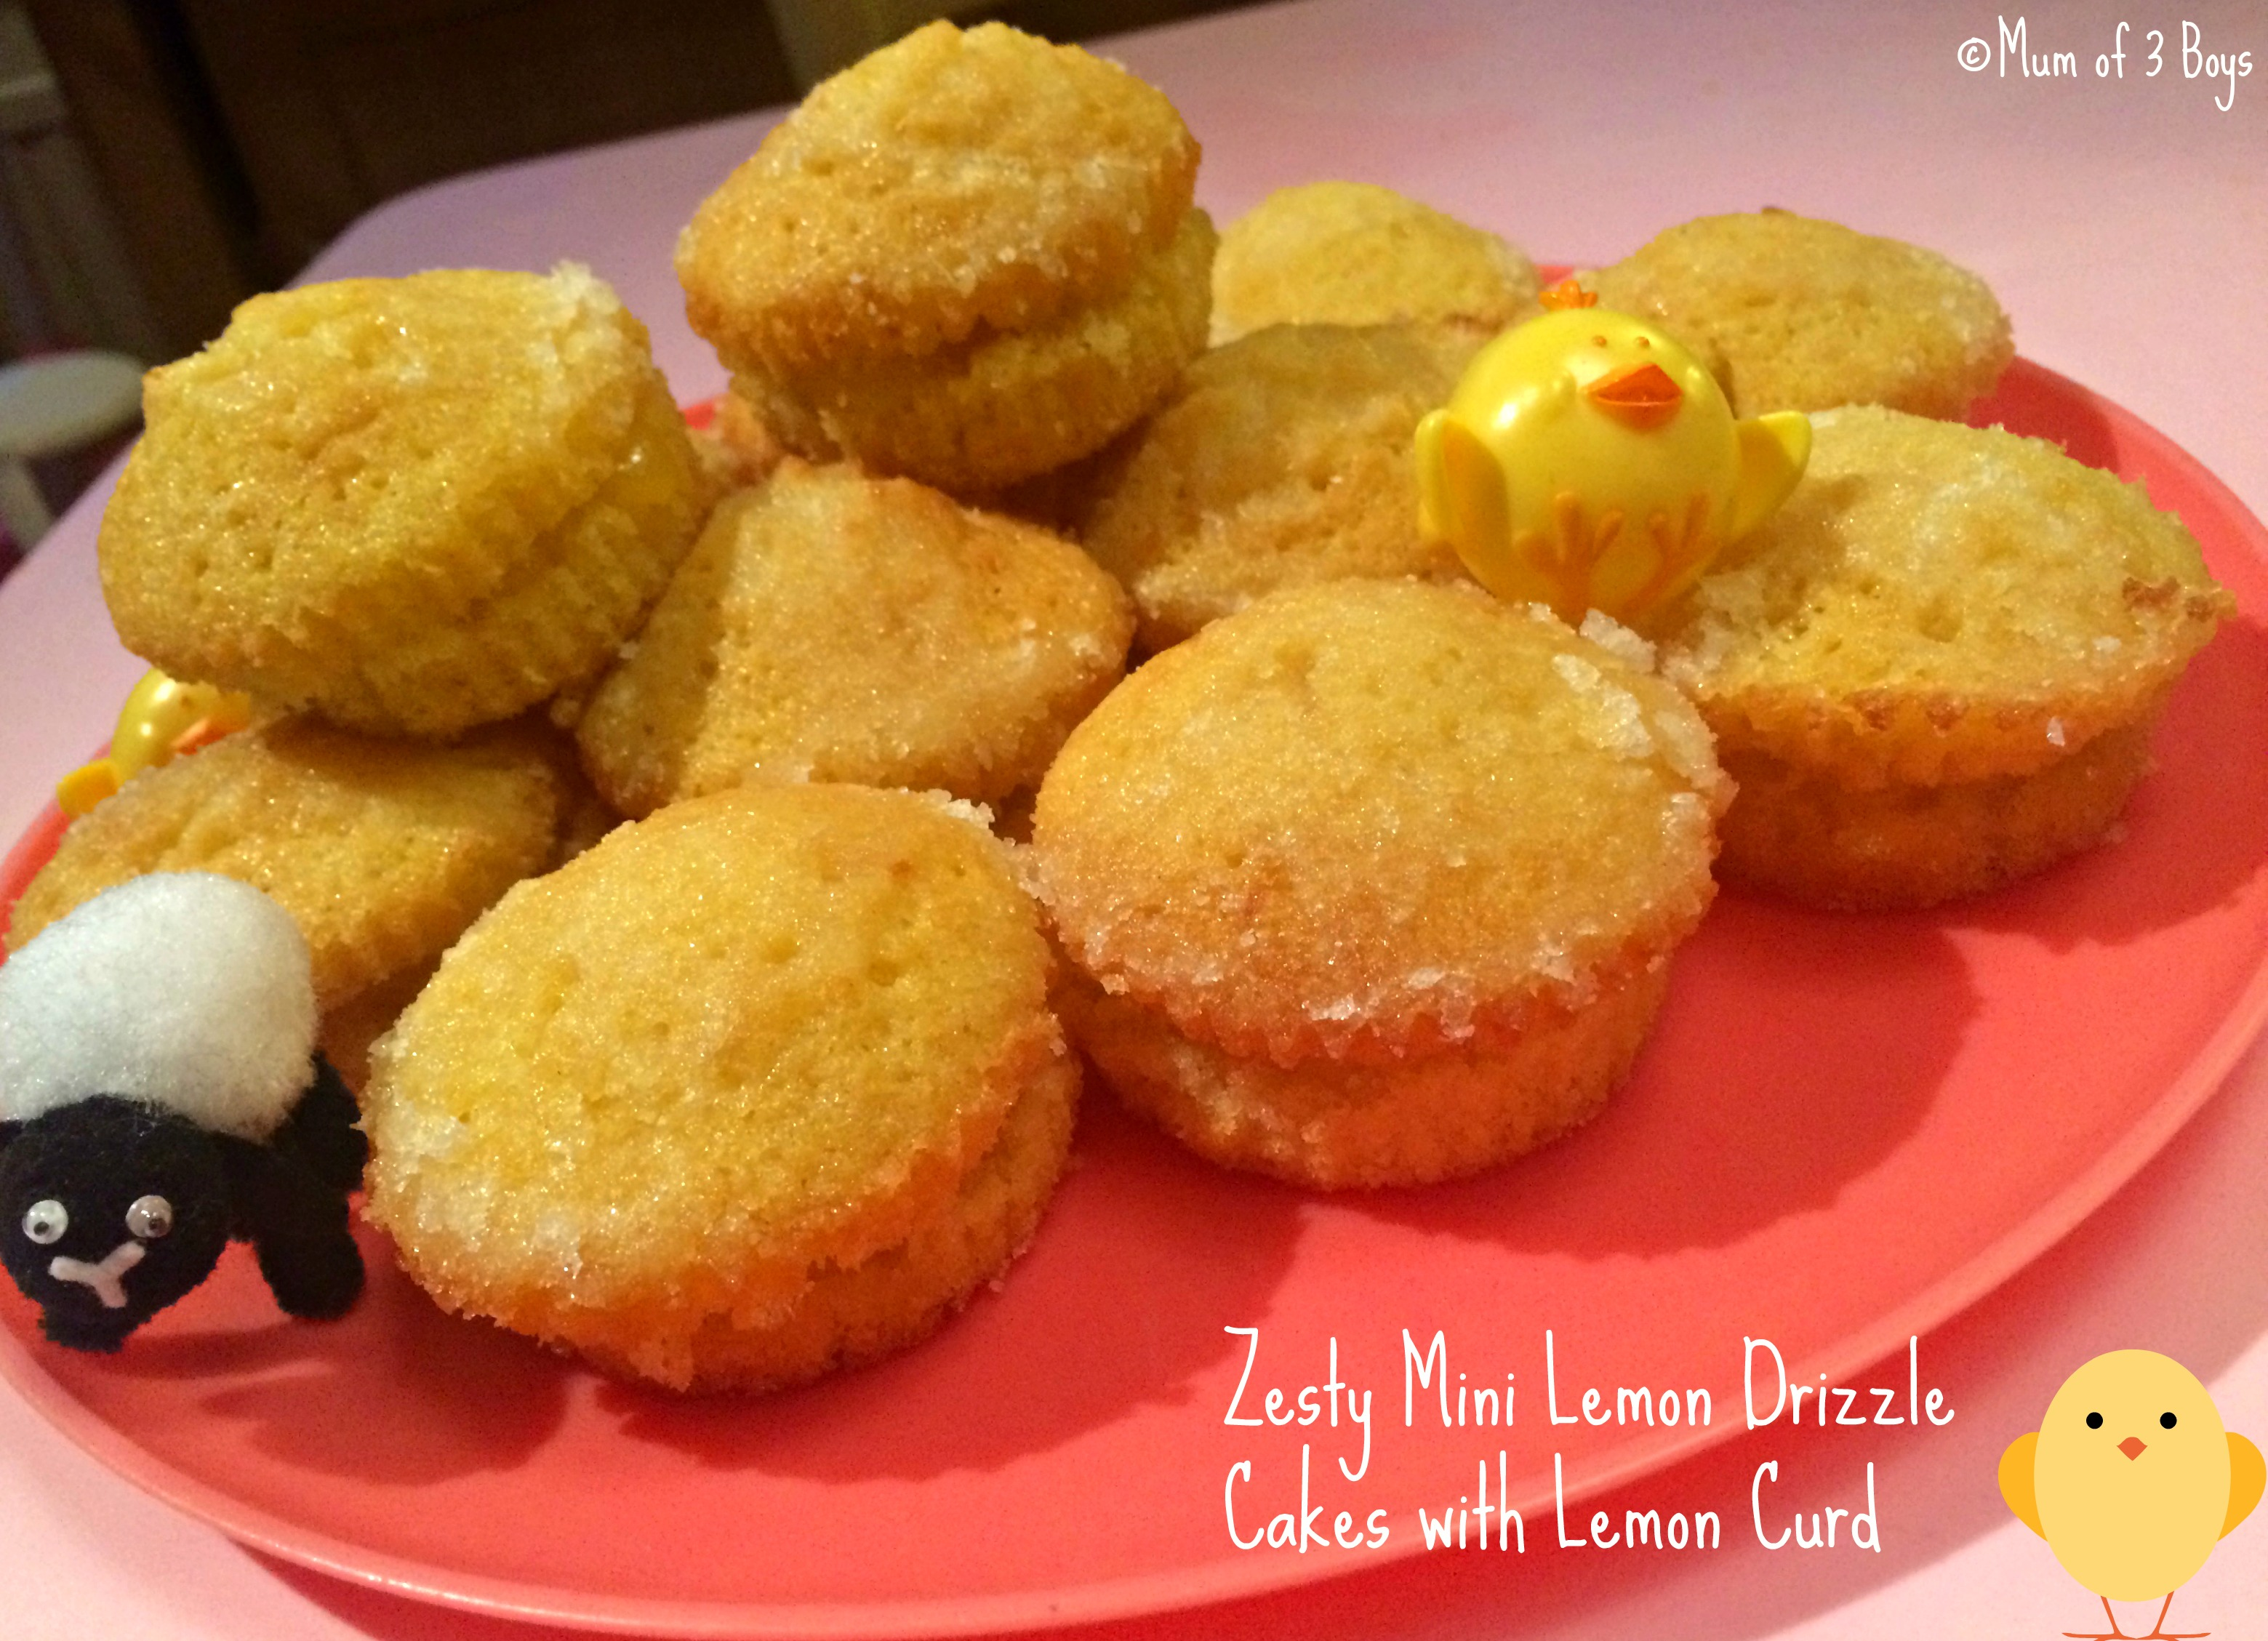 zesty mini drizzle cakes with lemon curd